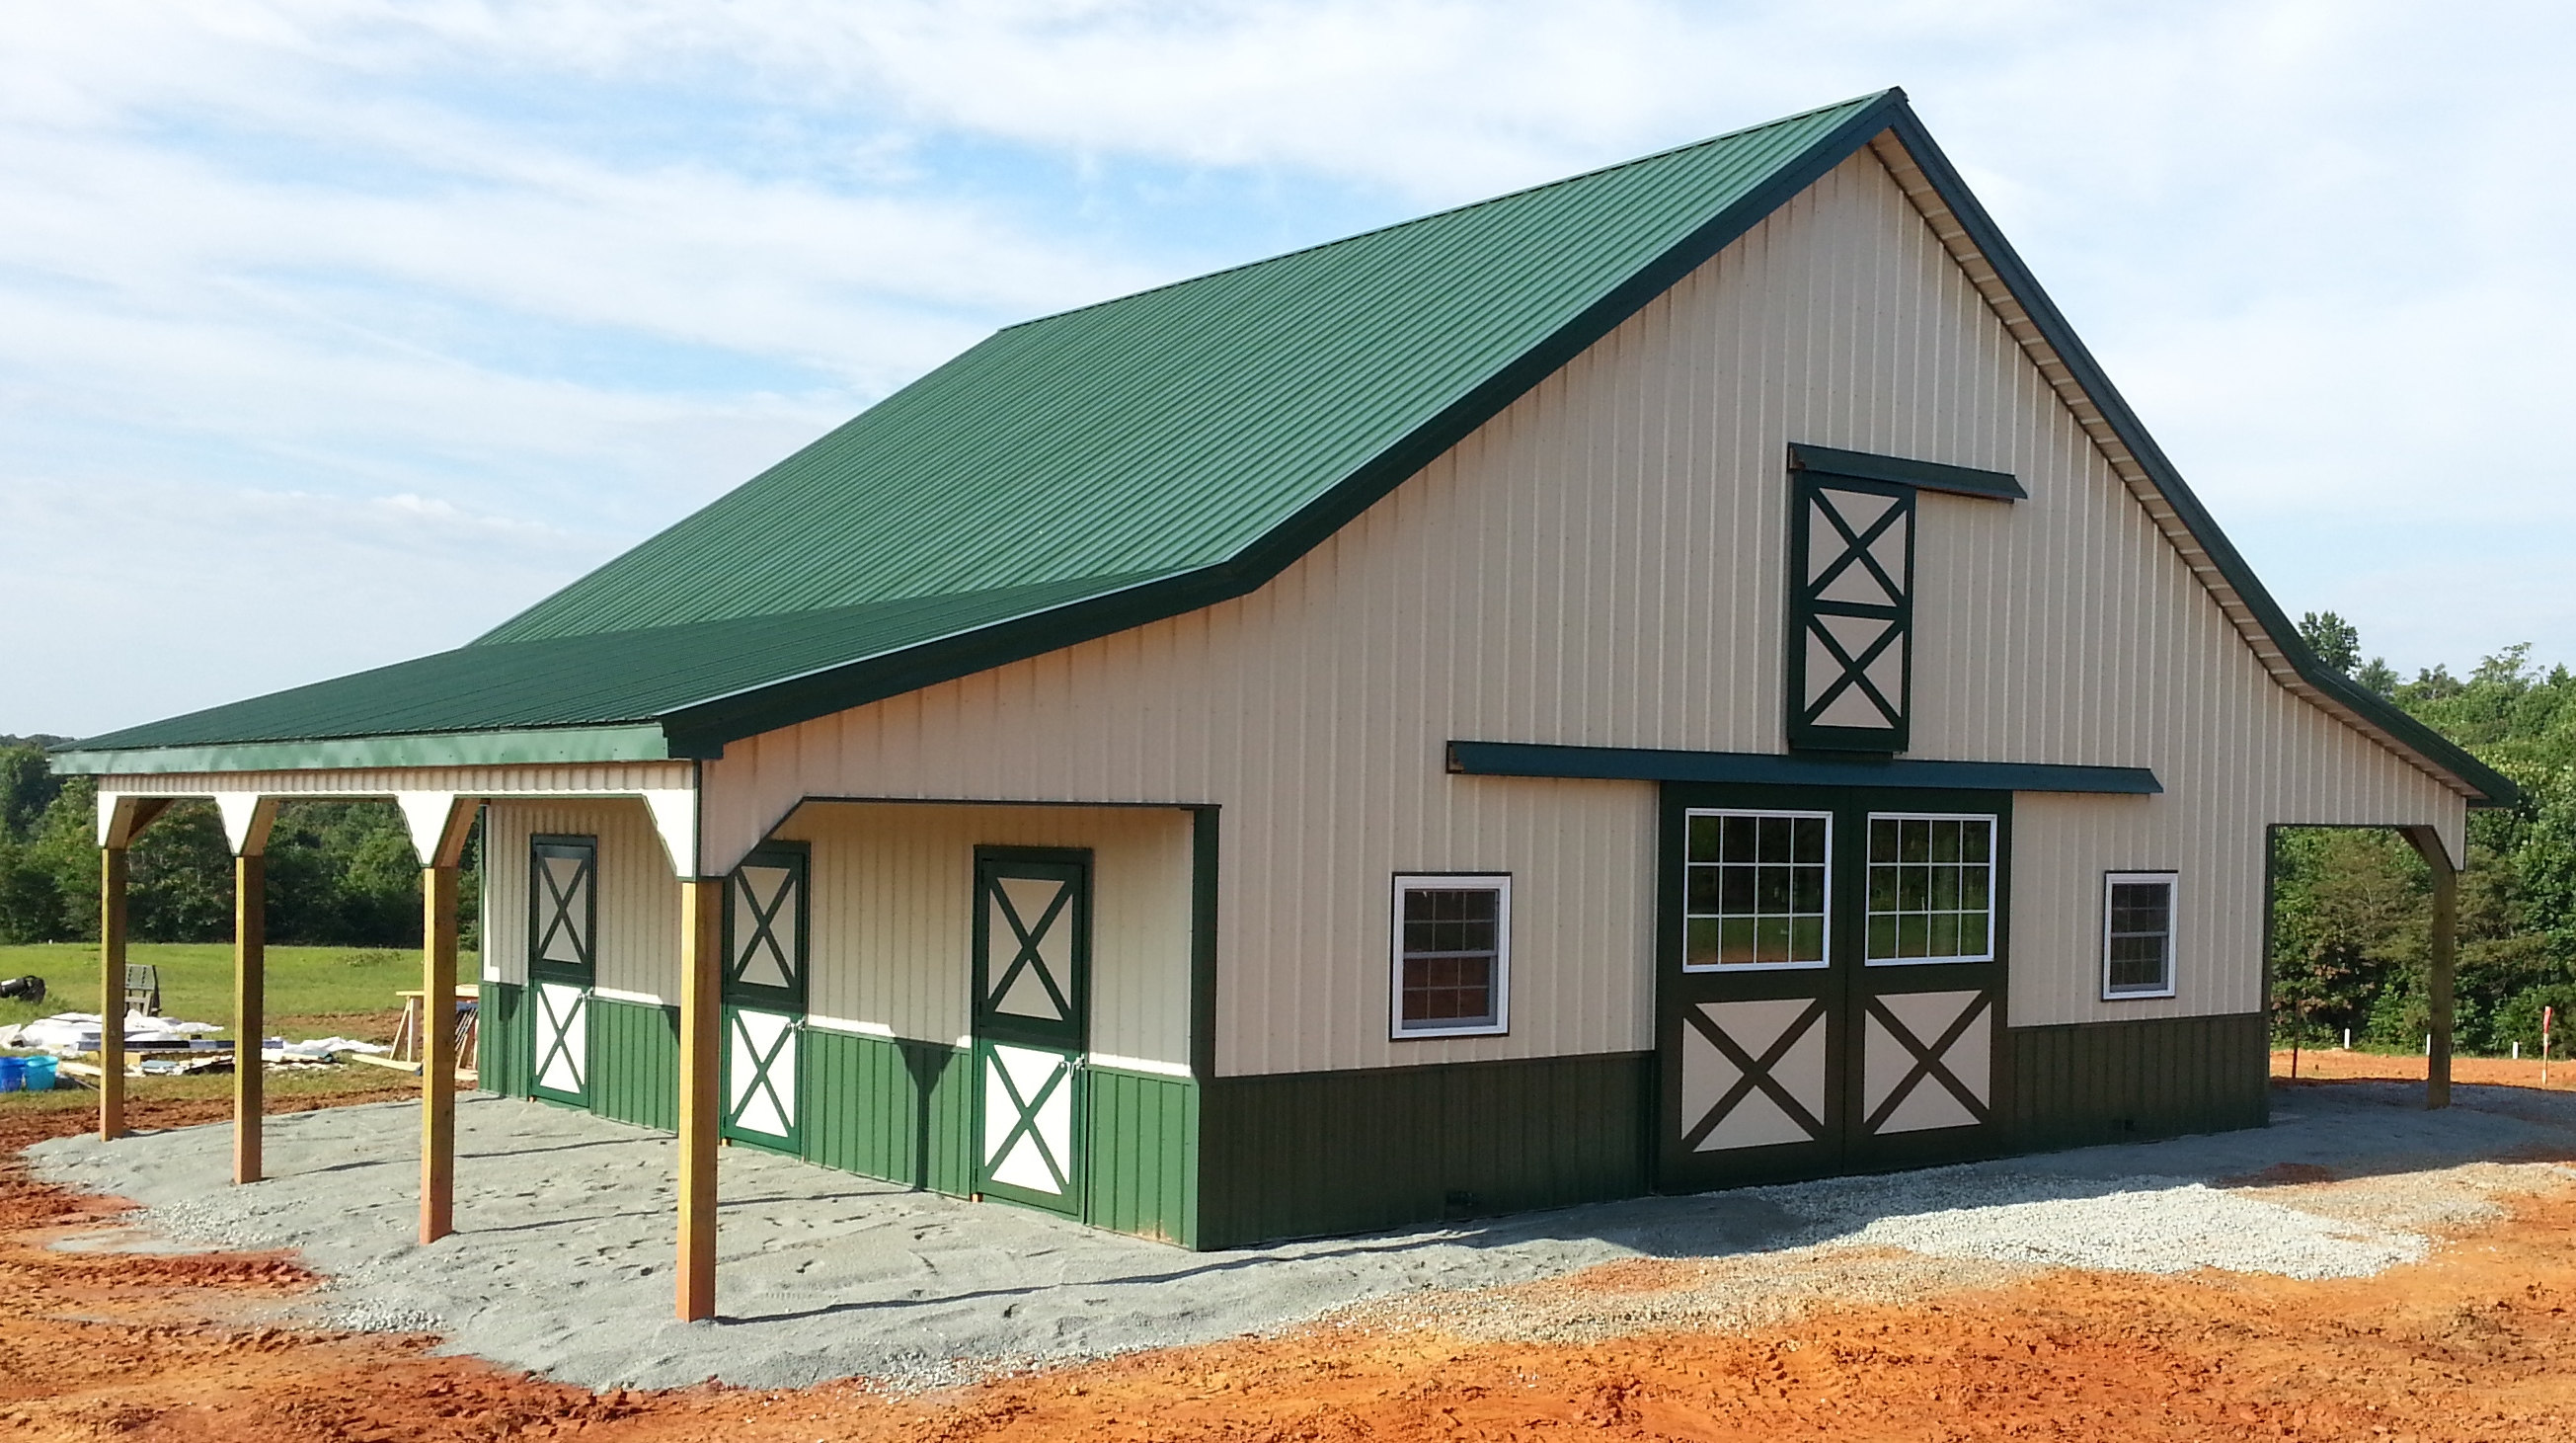 Residential Pole Barn Kits House Plans